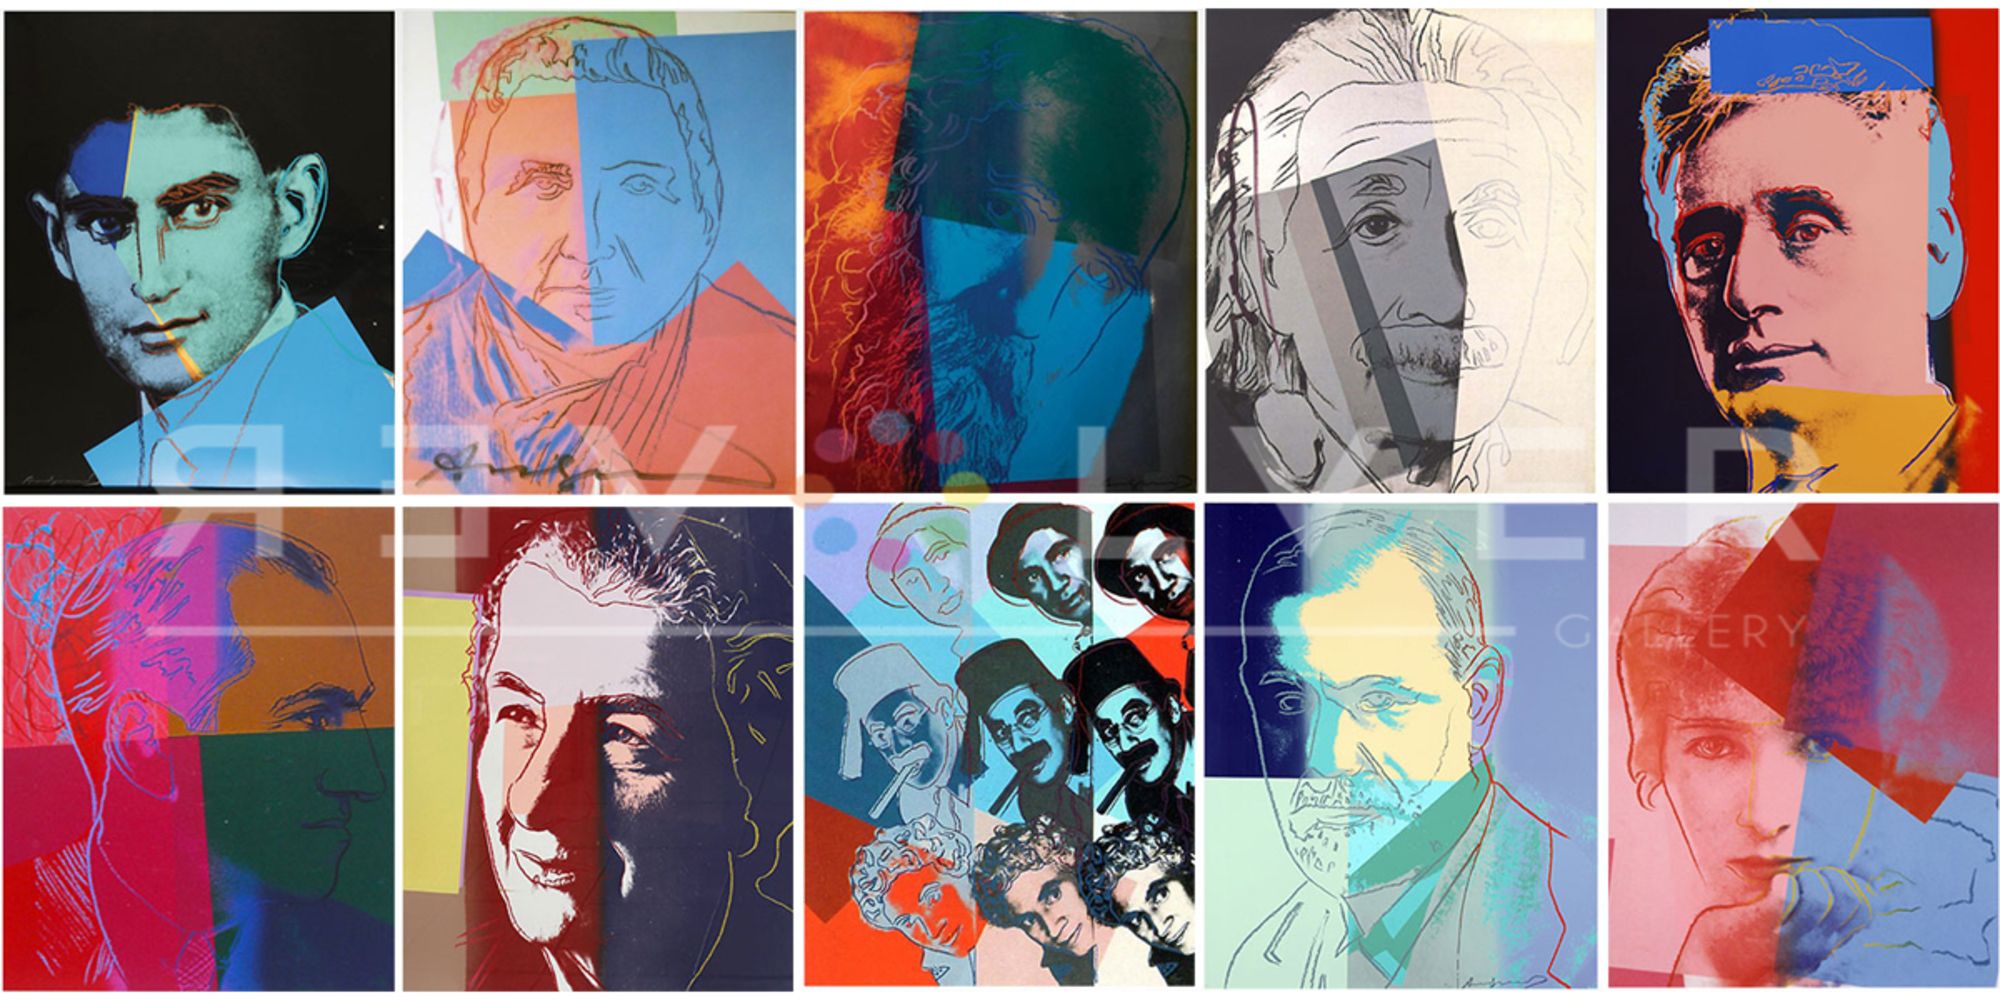 Ten Portraits Of Jews Of The 20th Cent. by Andy Warhol